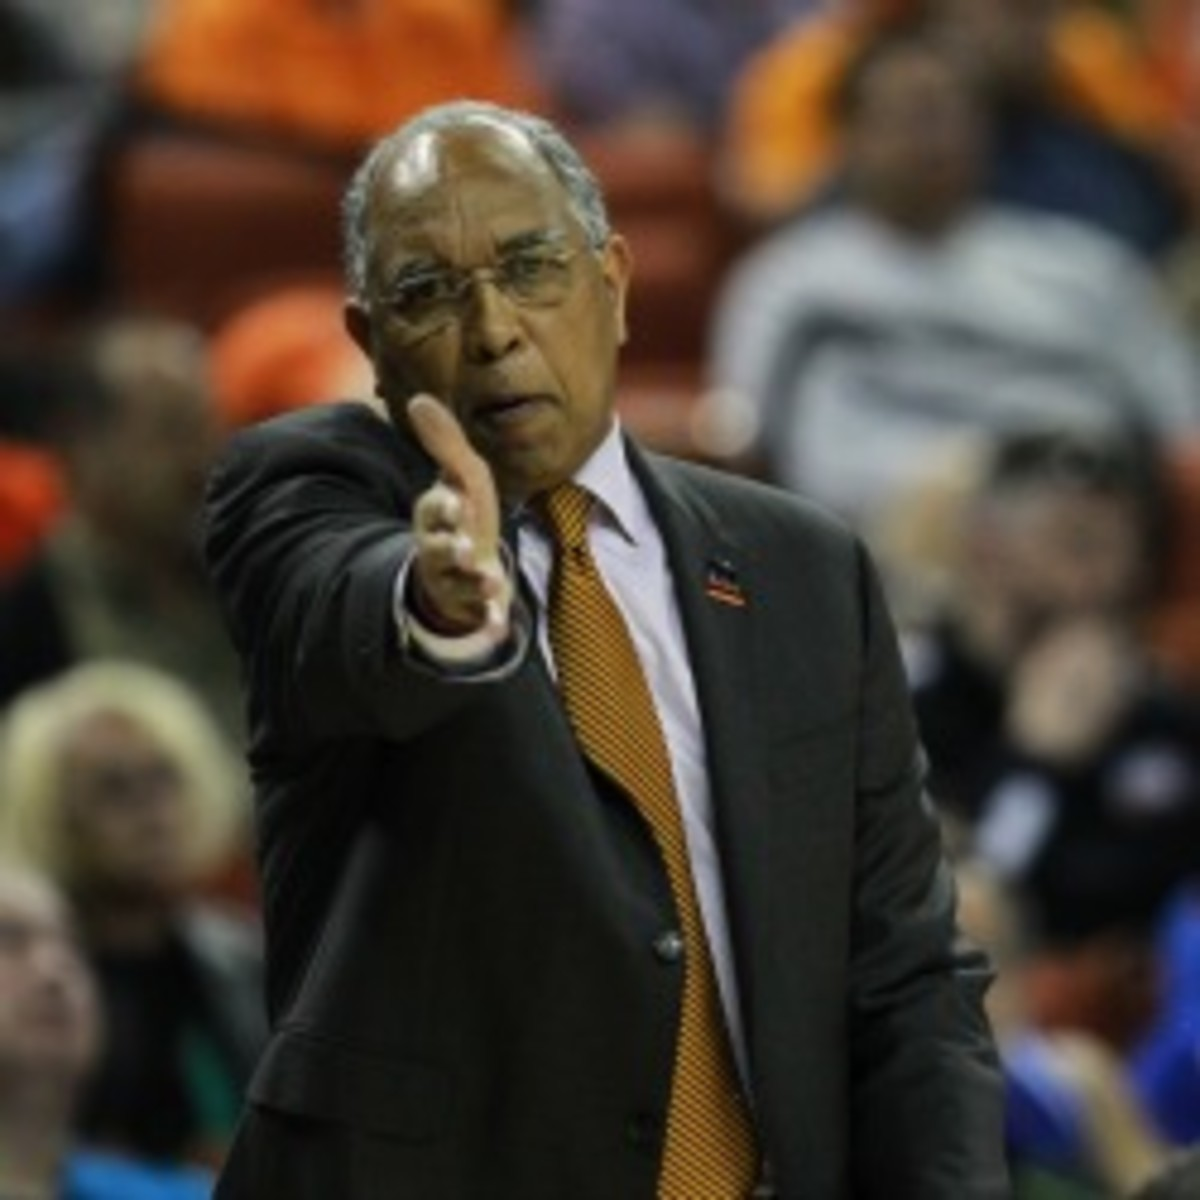 Tubby Smith reacts to a call against Florida in the 2013 NCAA tournament. (Photo by Ronald Martinez/Getty Images)